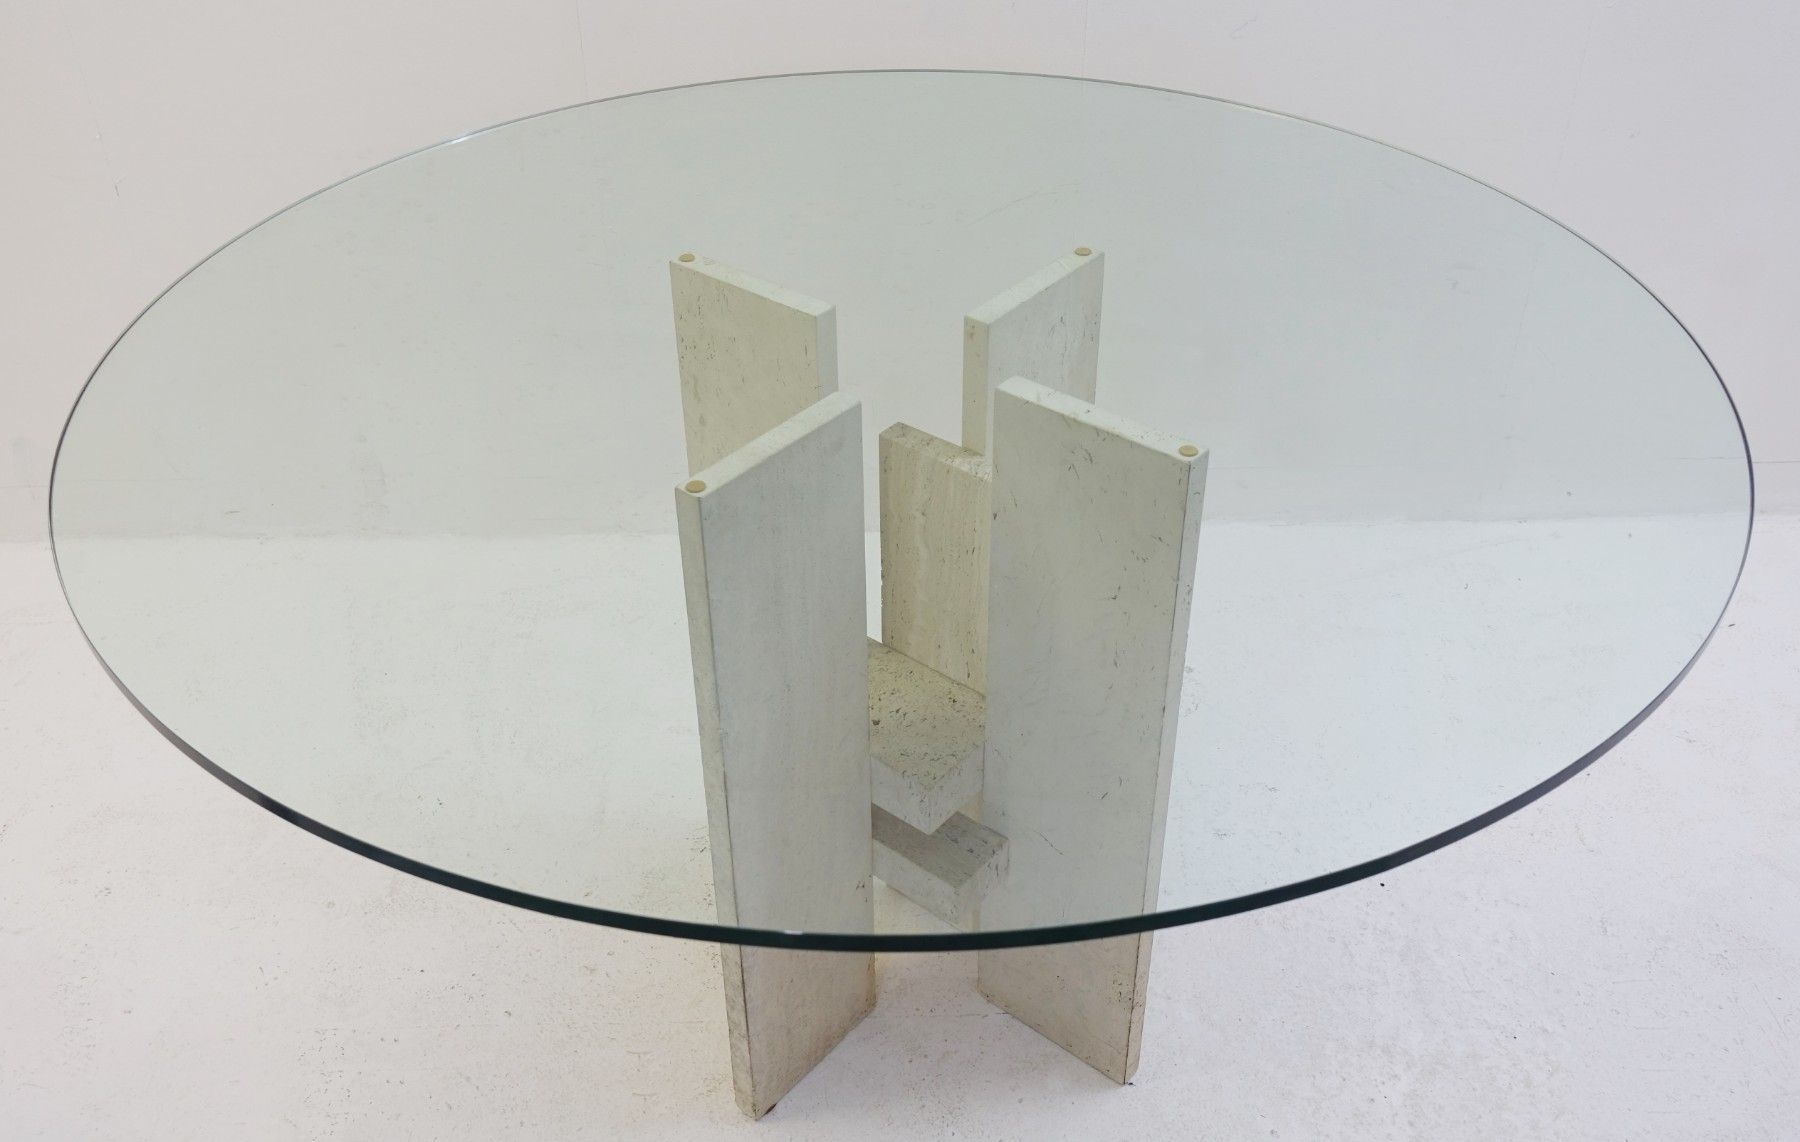 Vintage travertine and glass dining table 5 1 50000 €